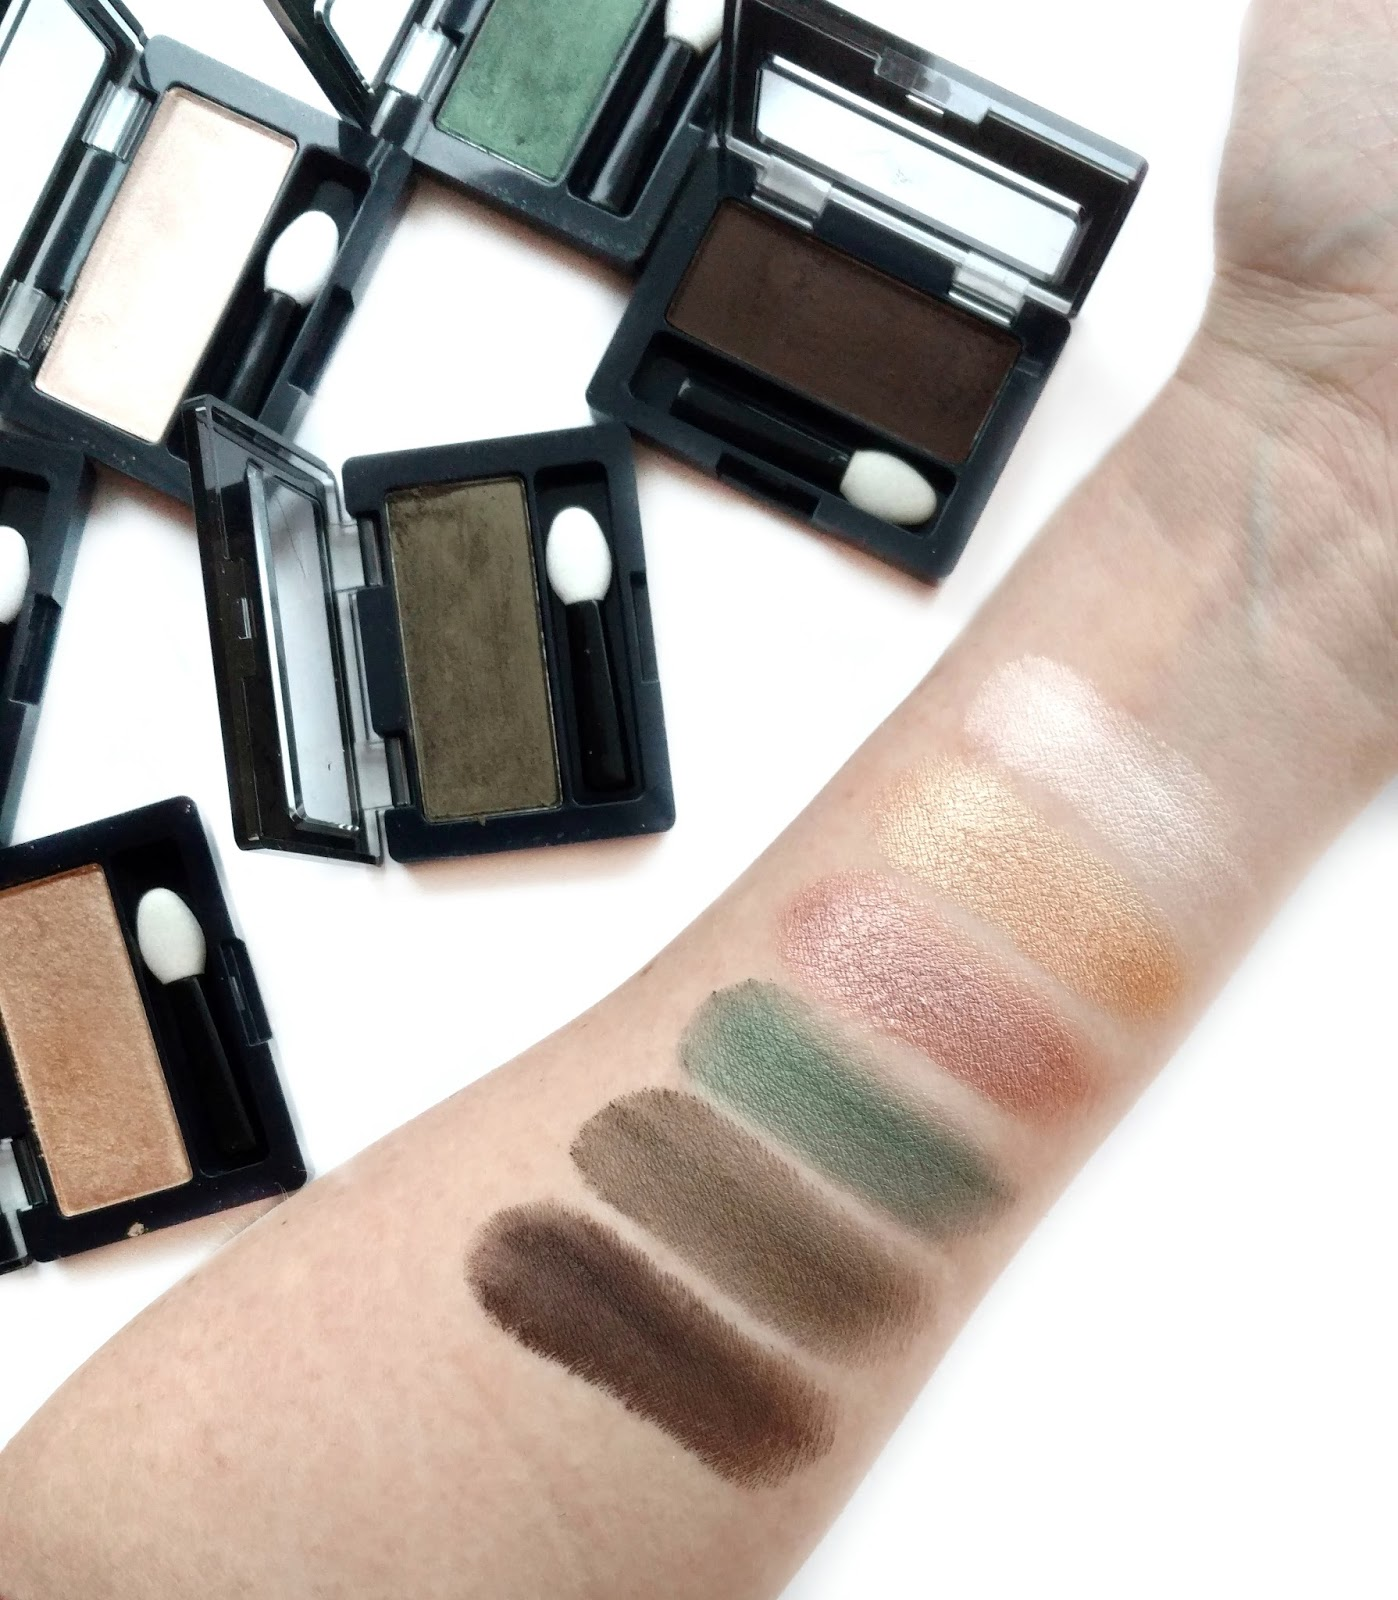 maybelline expert wear eyeshadow swatches